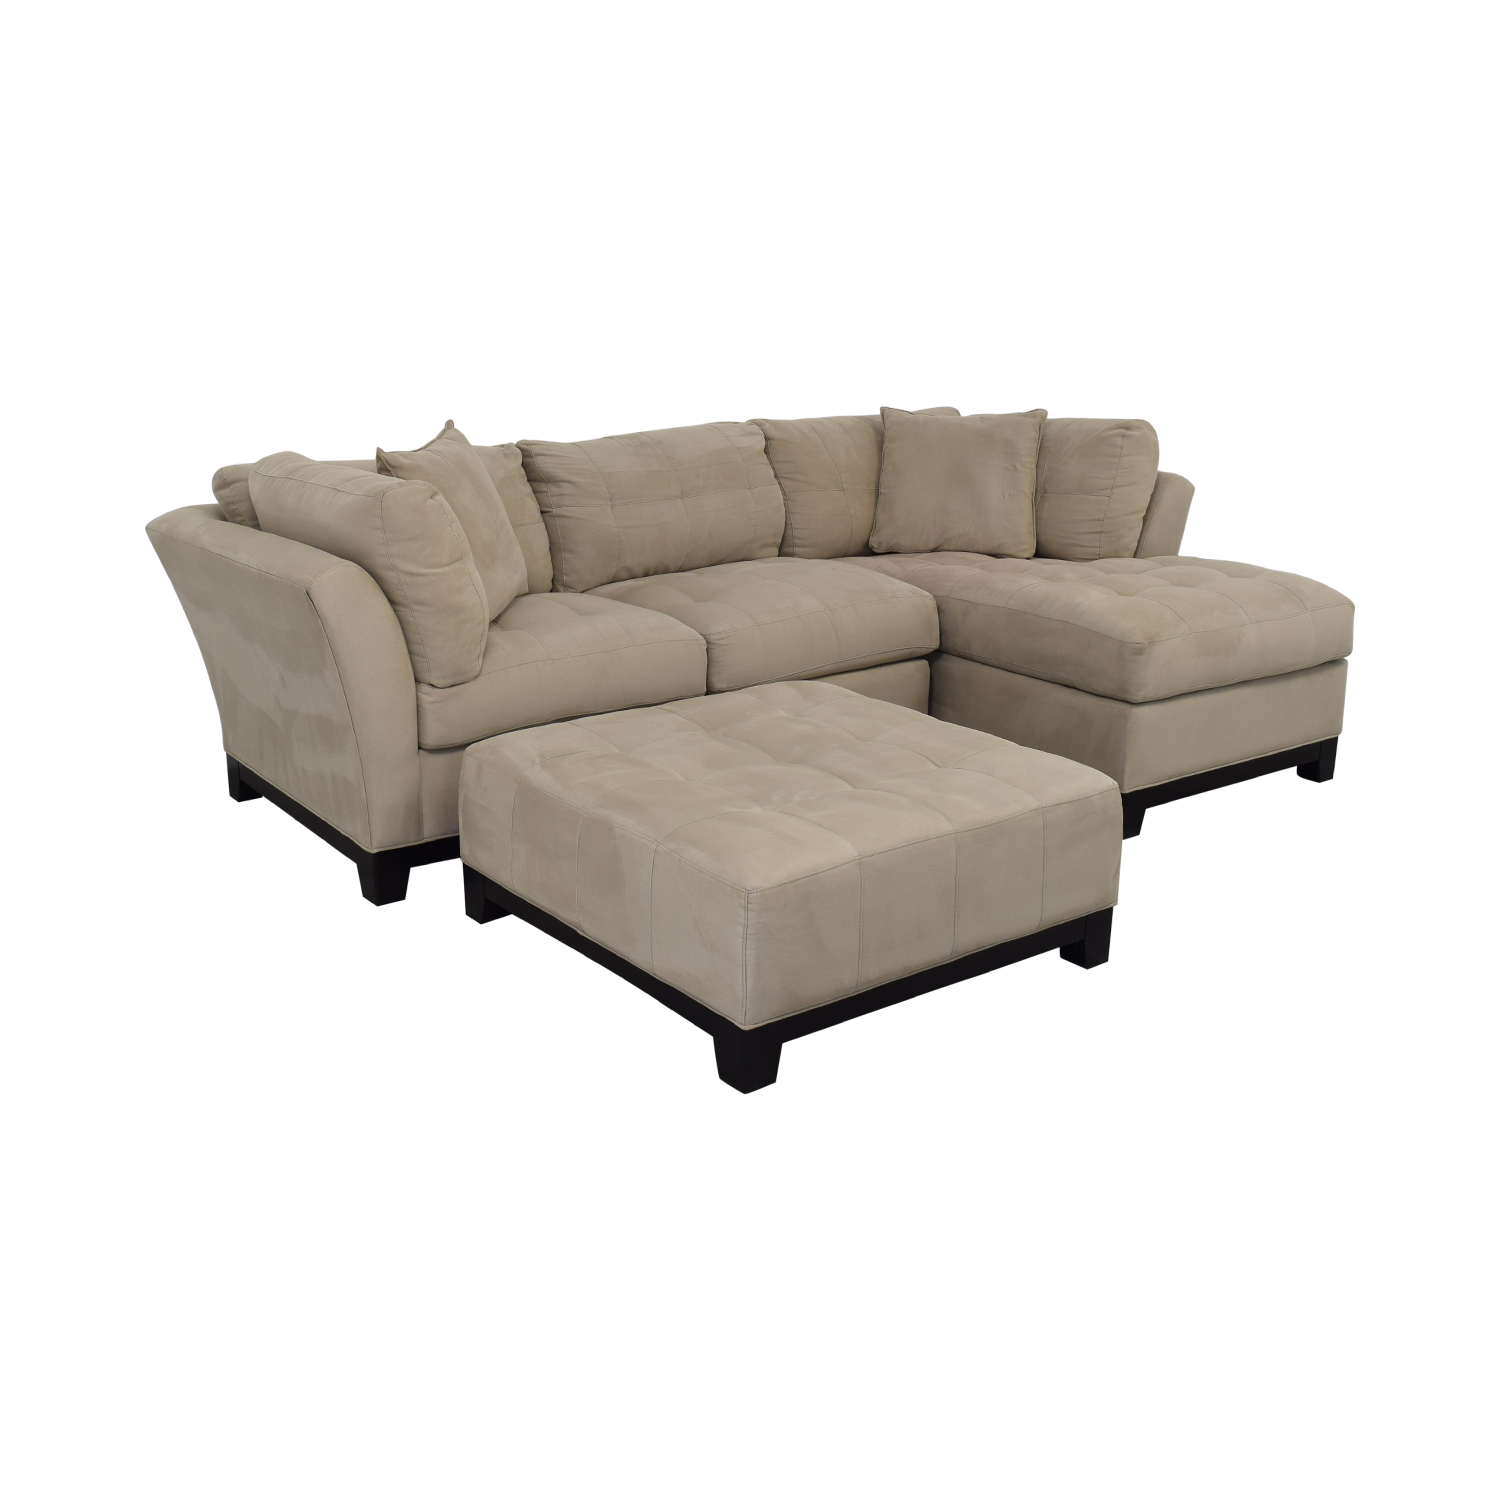 shop Raymour & Flanigan Sectional Sofa with Chaise and Cocktail Ottoman Raymour & Flanigan Sofas